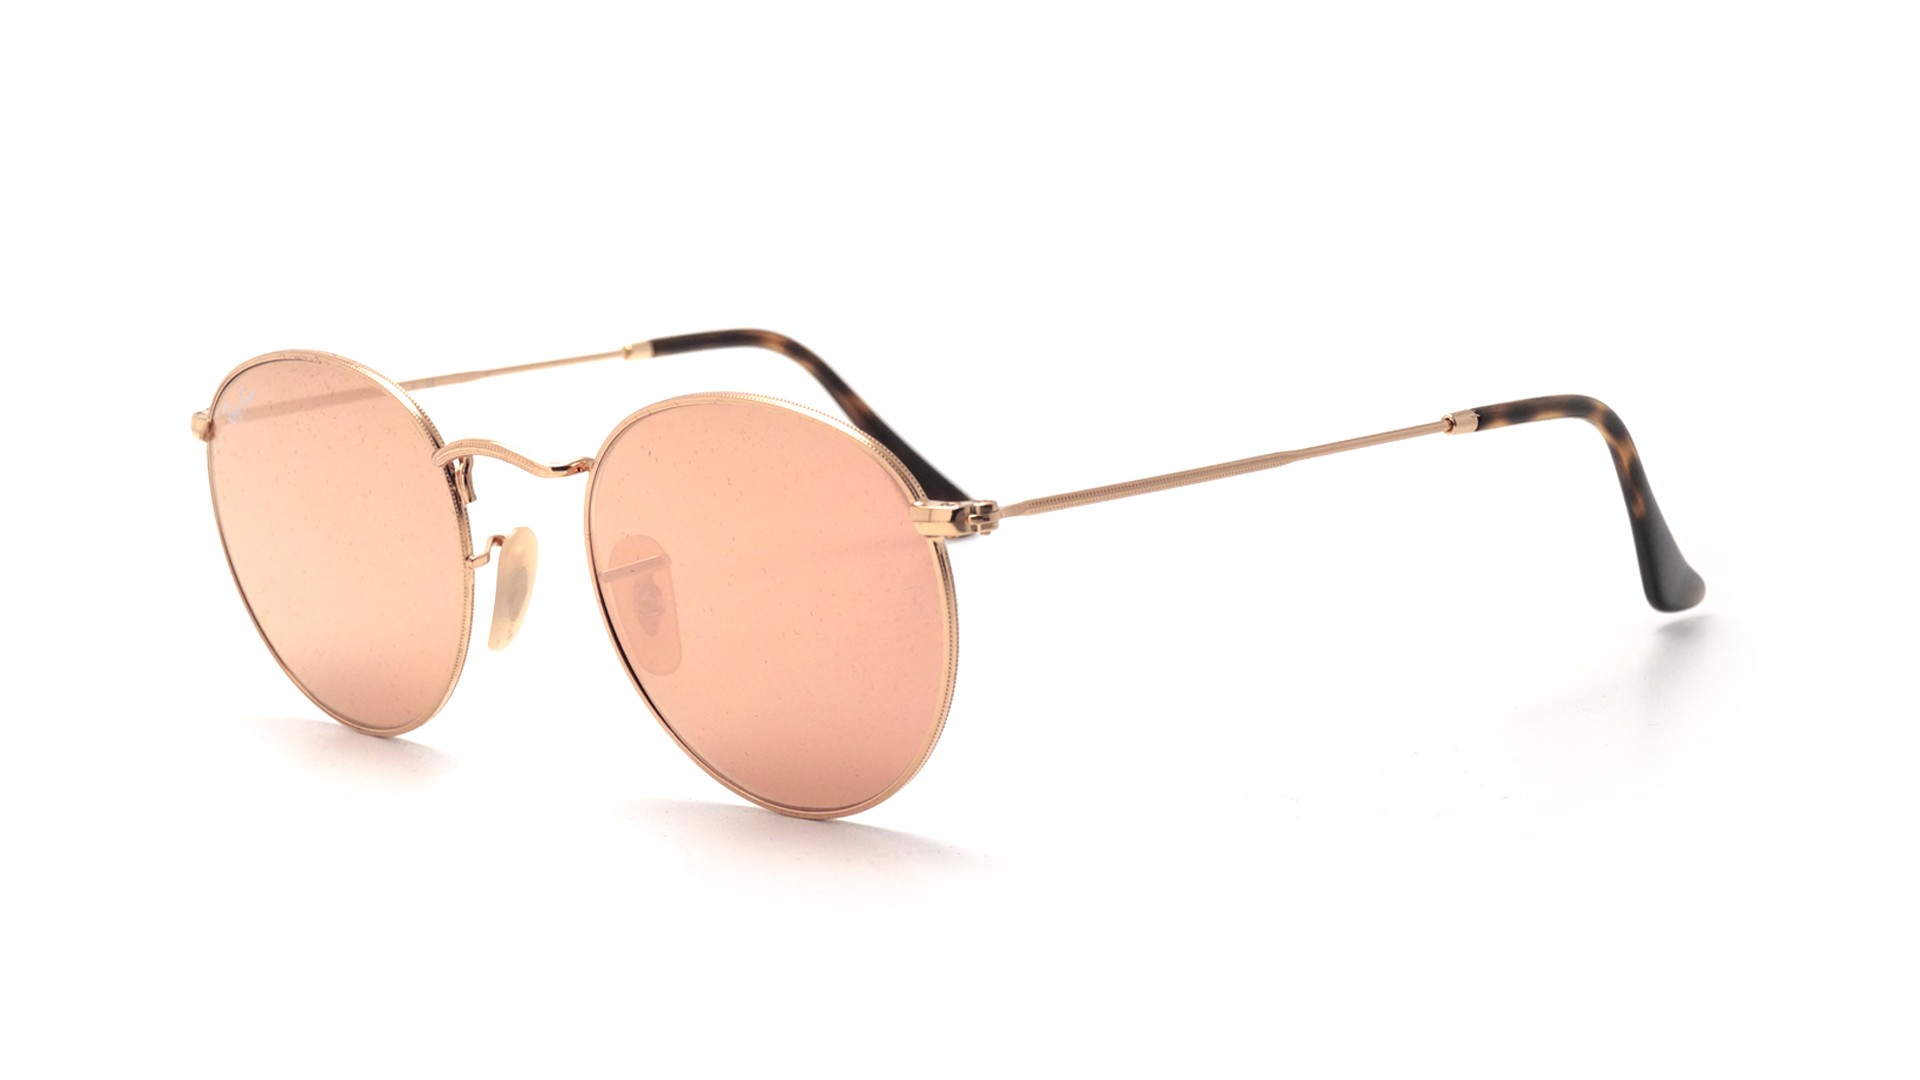 0280e273b35f18 Sonnenbrillen Ray-Ban Round Pink Shiny gold Metal RB3447N 001/Z2 50-21  Mittel